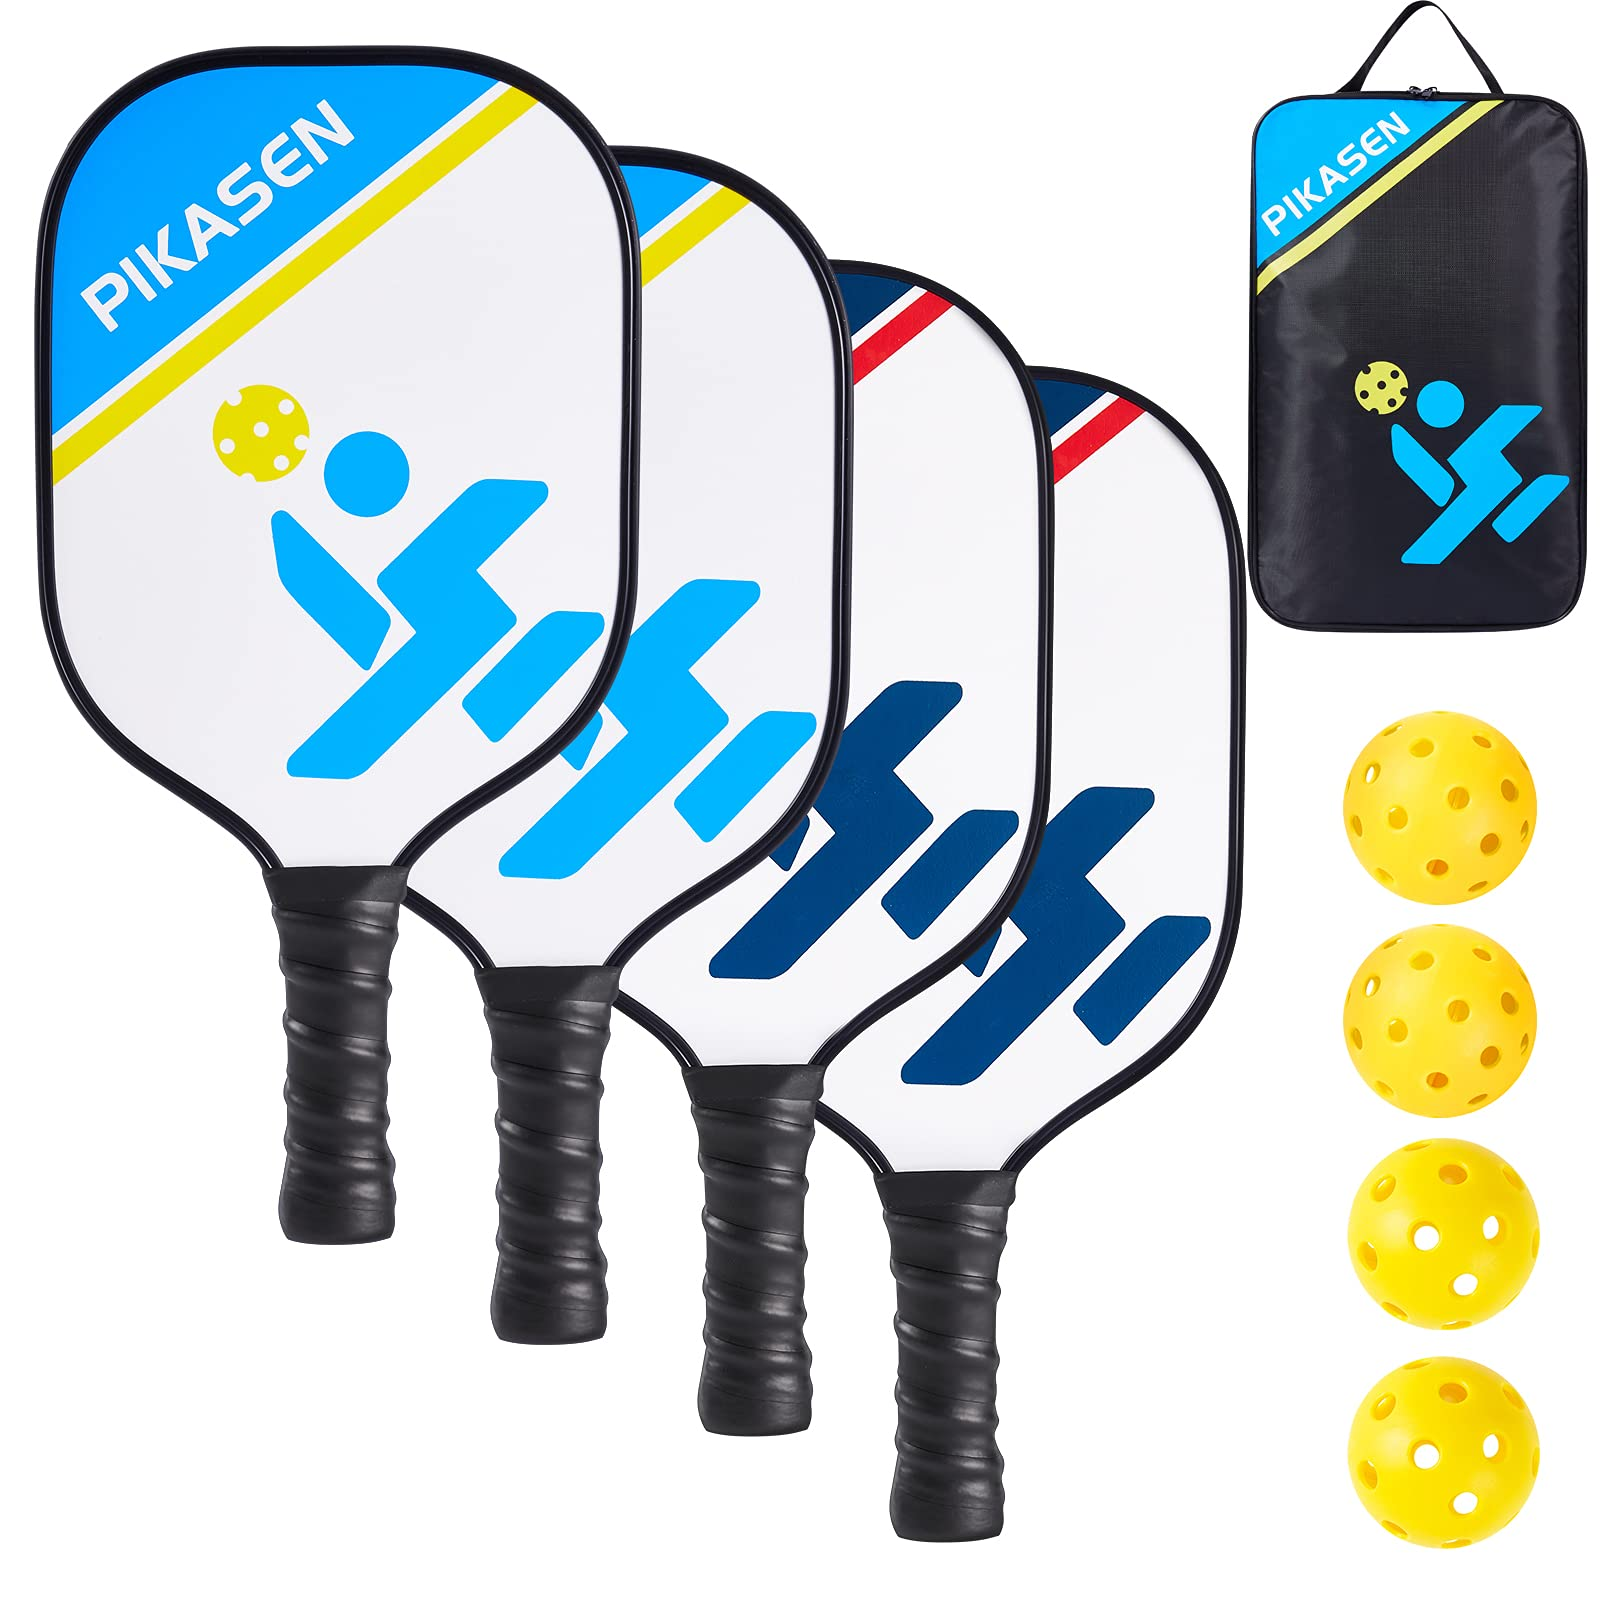 PIKASEN Wooden Pickleball Paddles Set of 4?Includes 4 Wood P